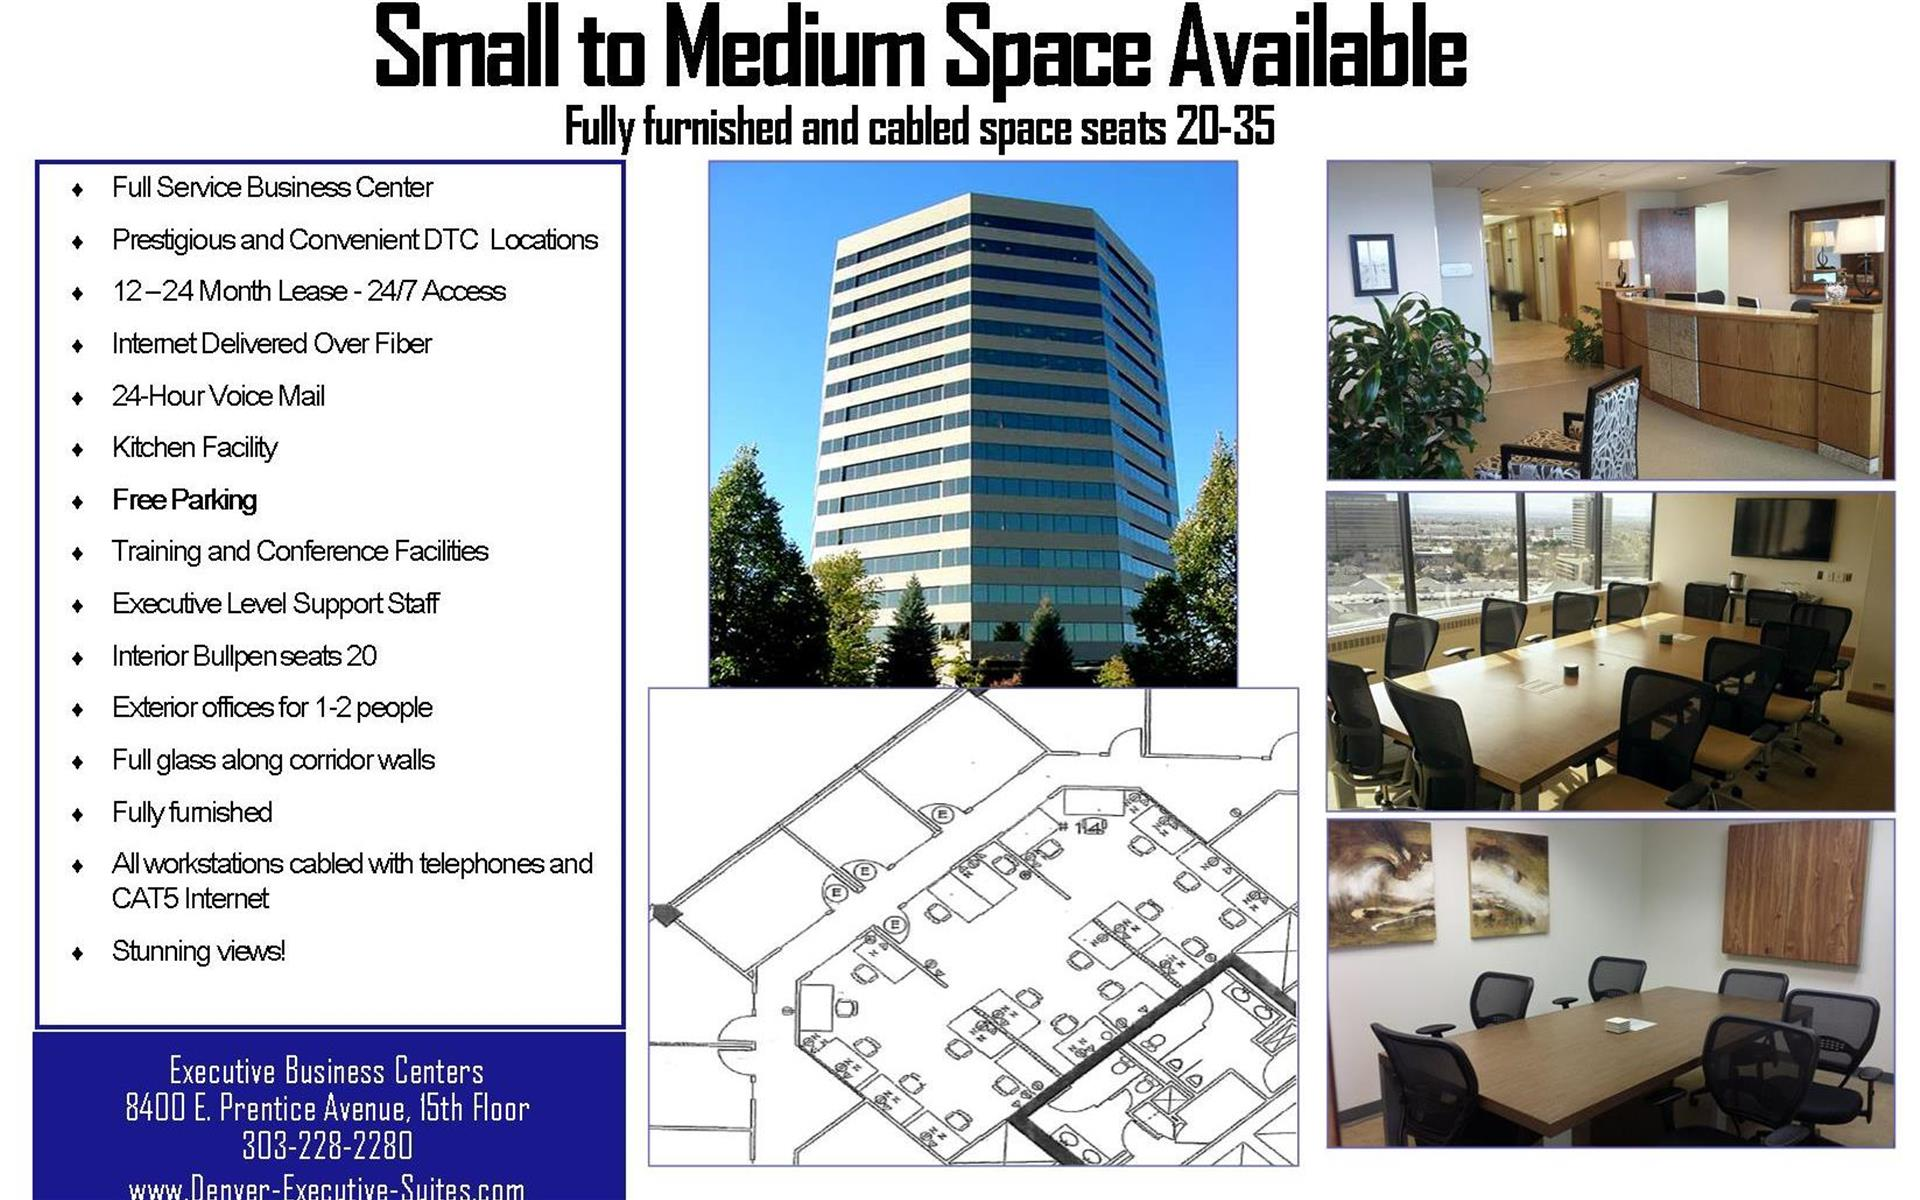 Executive Business Centers Denver Tech Center - Large Team Space for 20